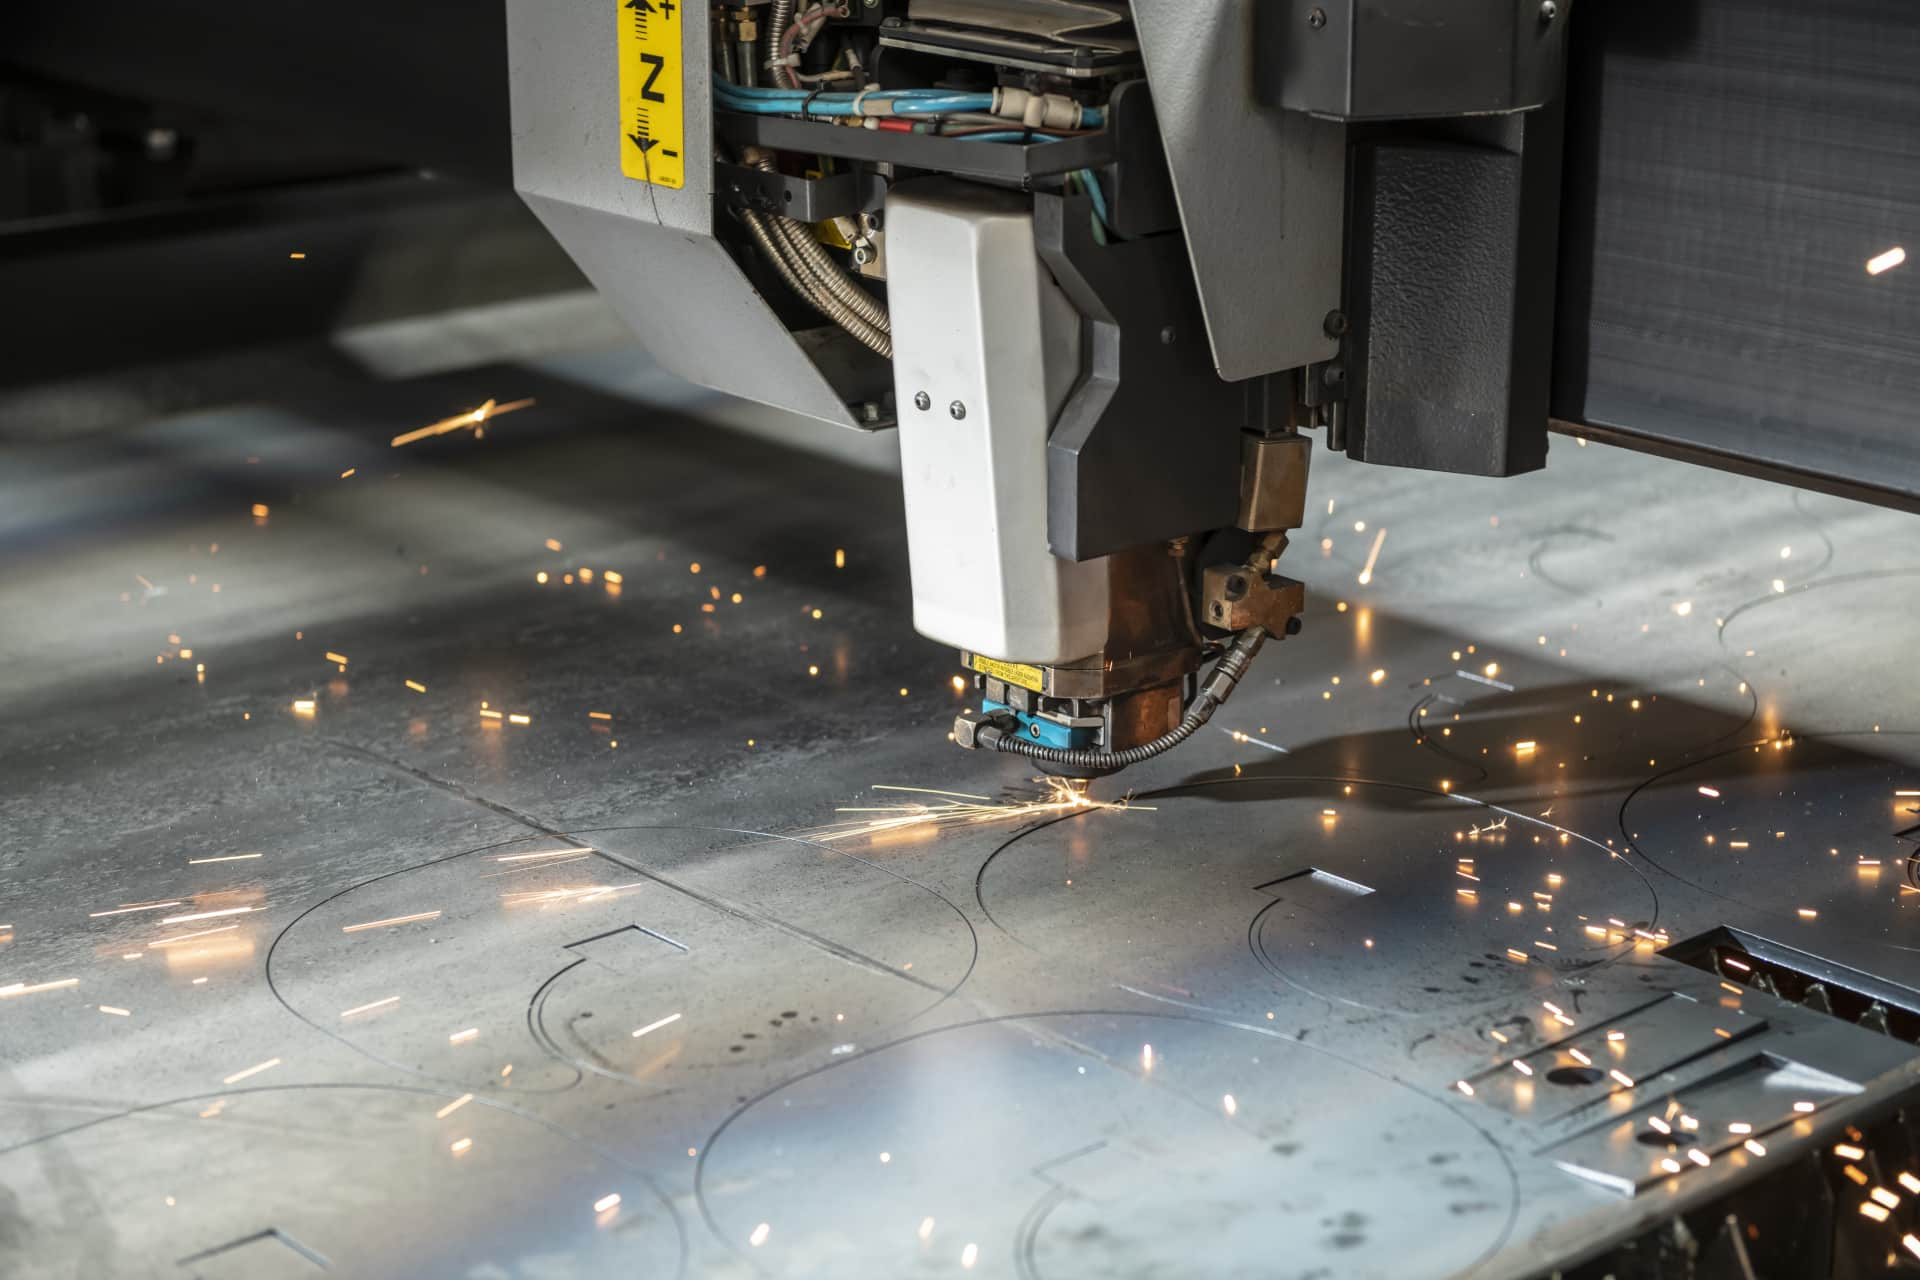 Automated Laser Cutting Machine - In use